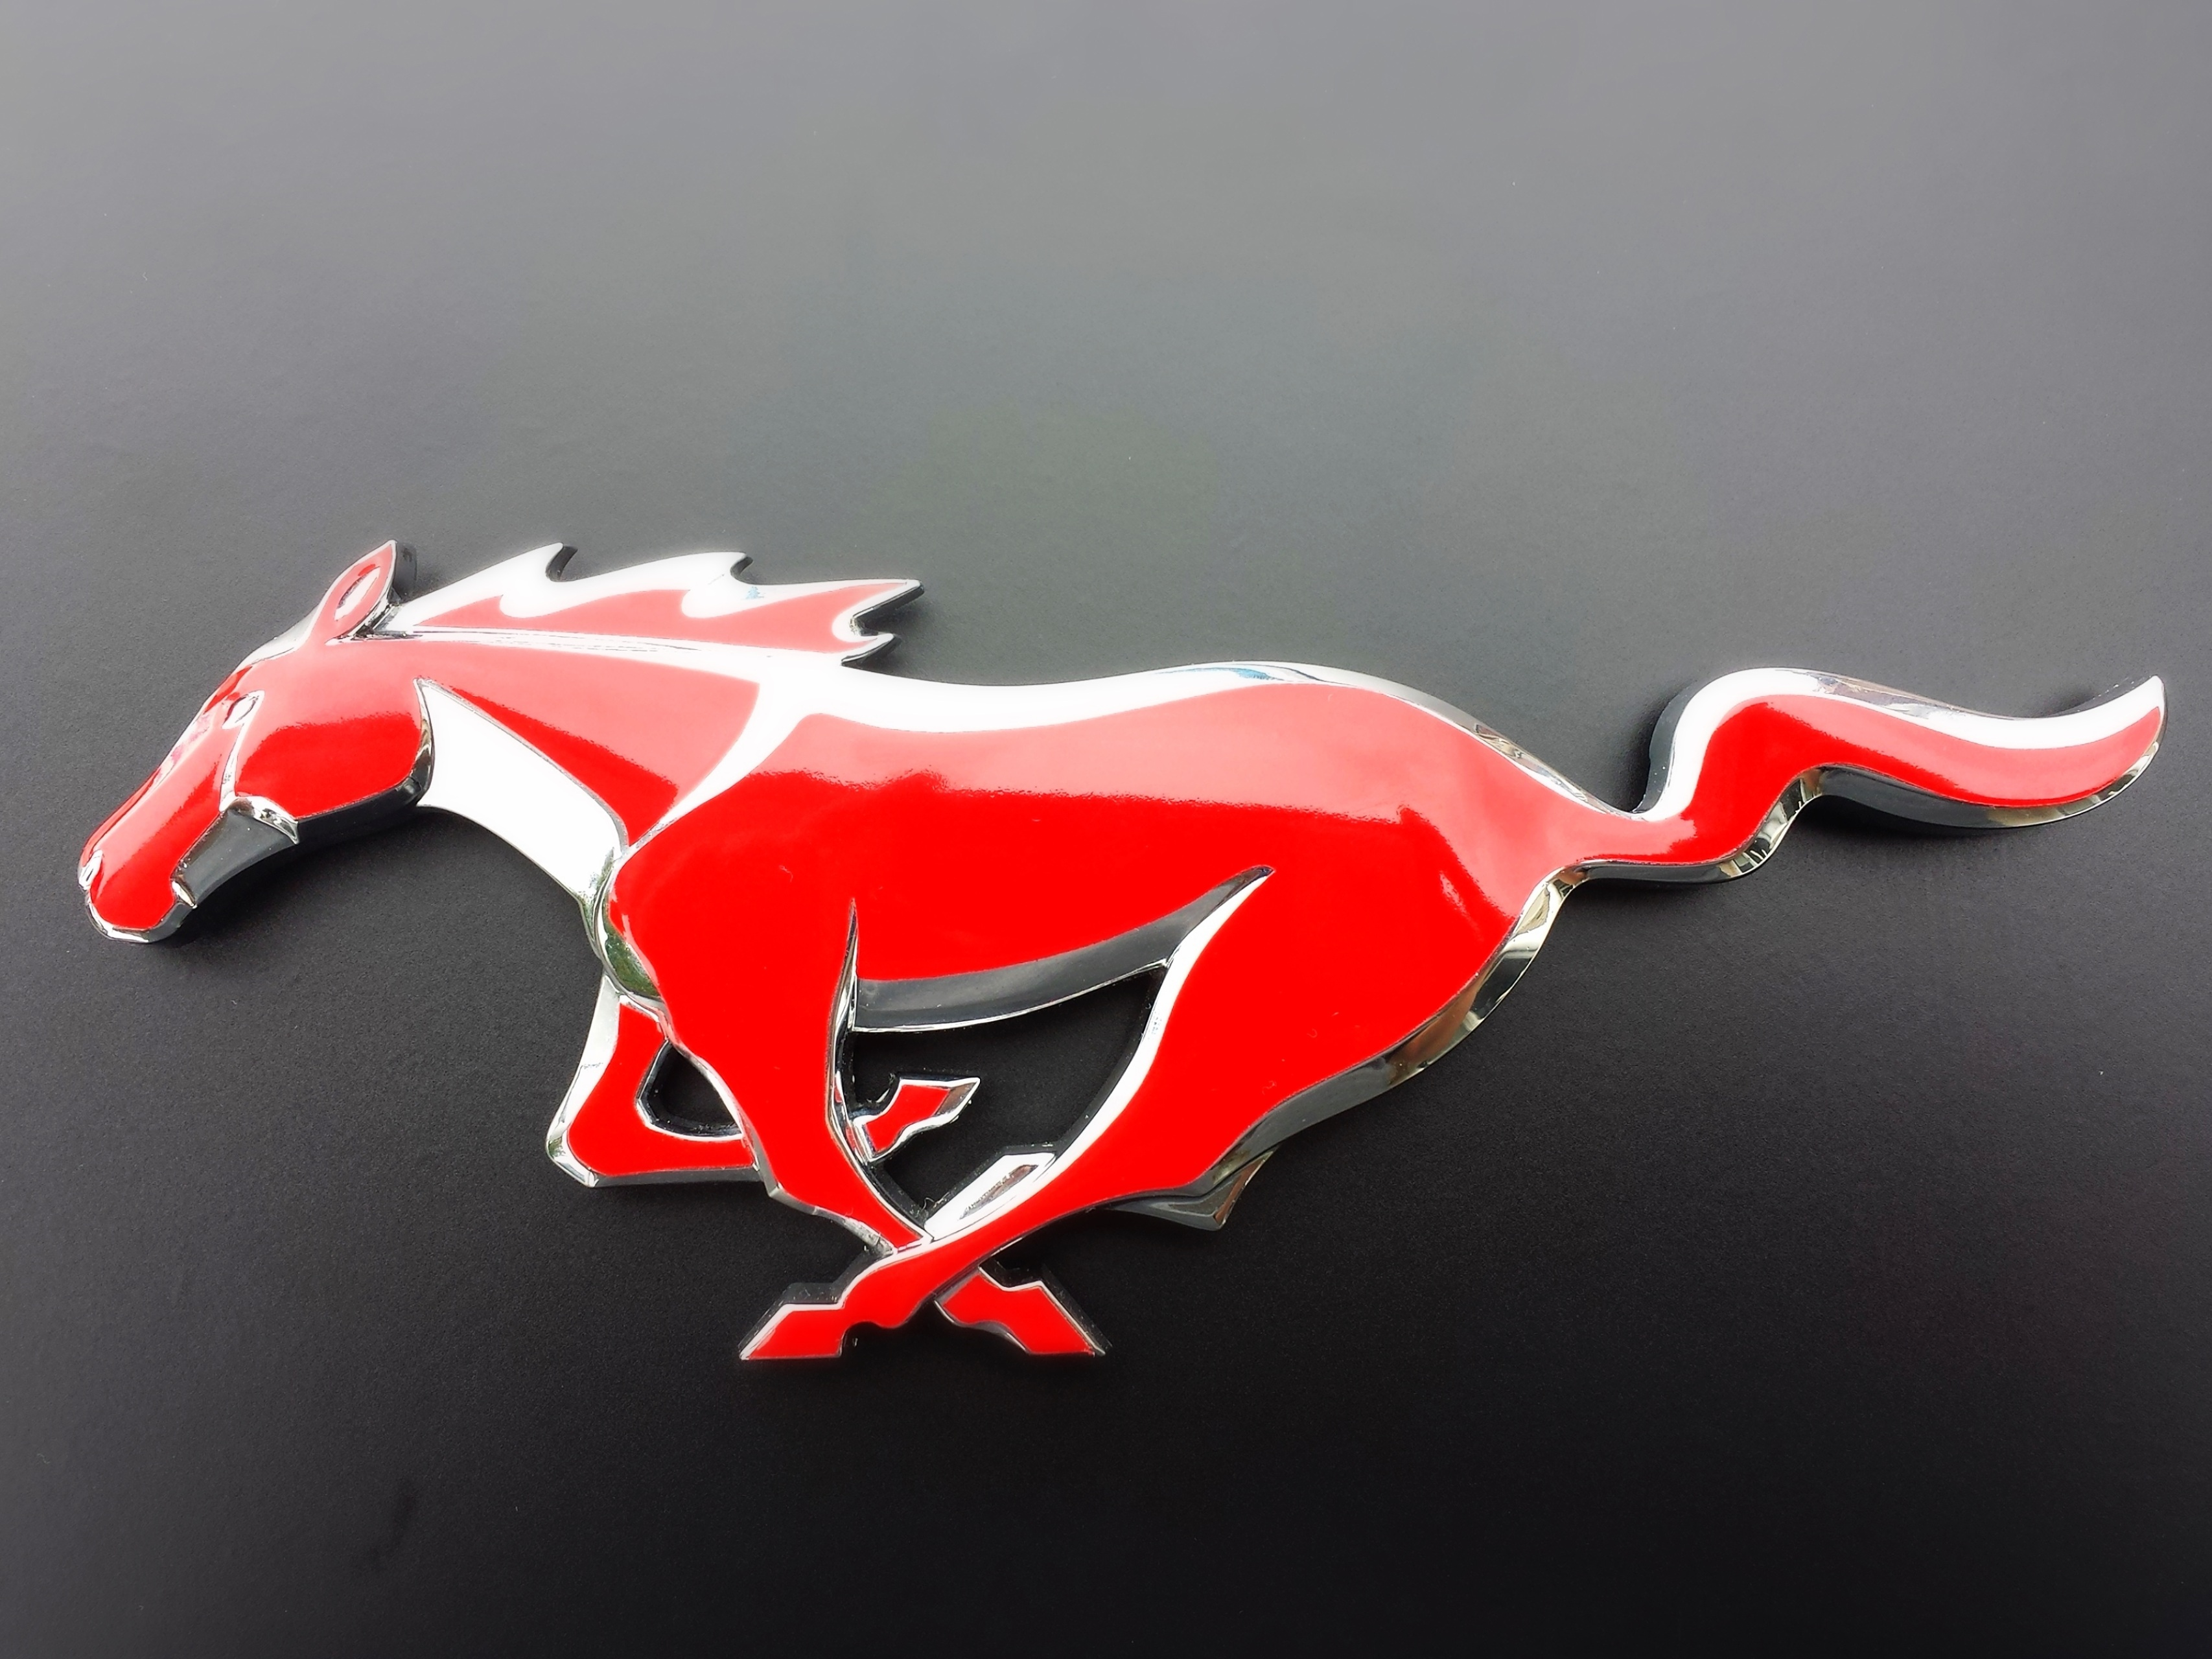 Ford Mustang Emblem Aka Quot The Pony Quot Badgeskin